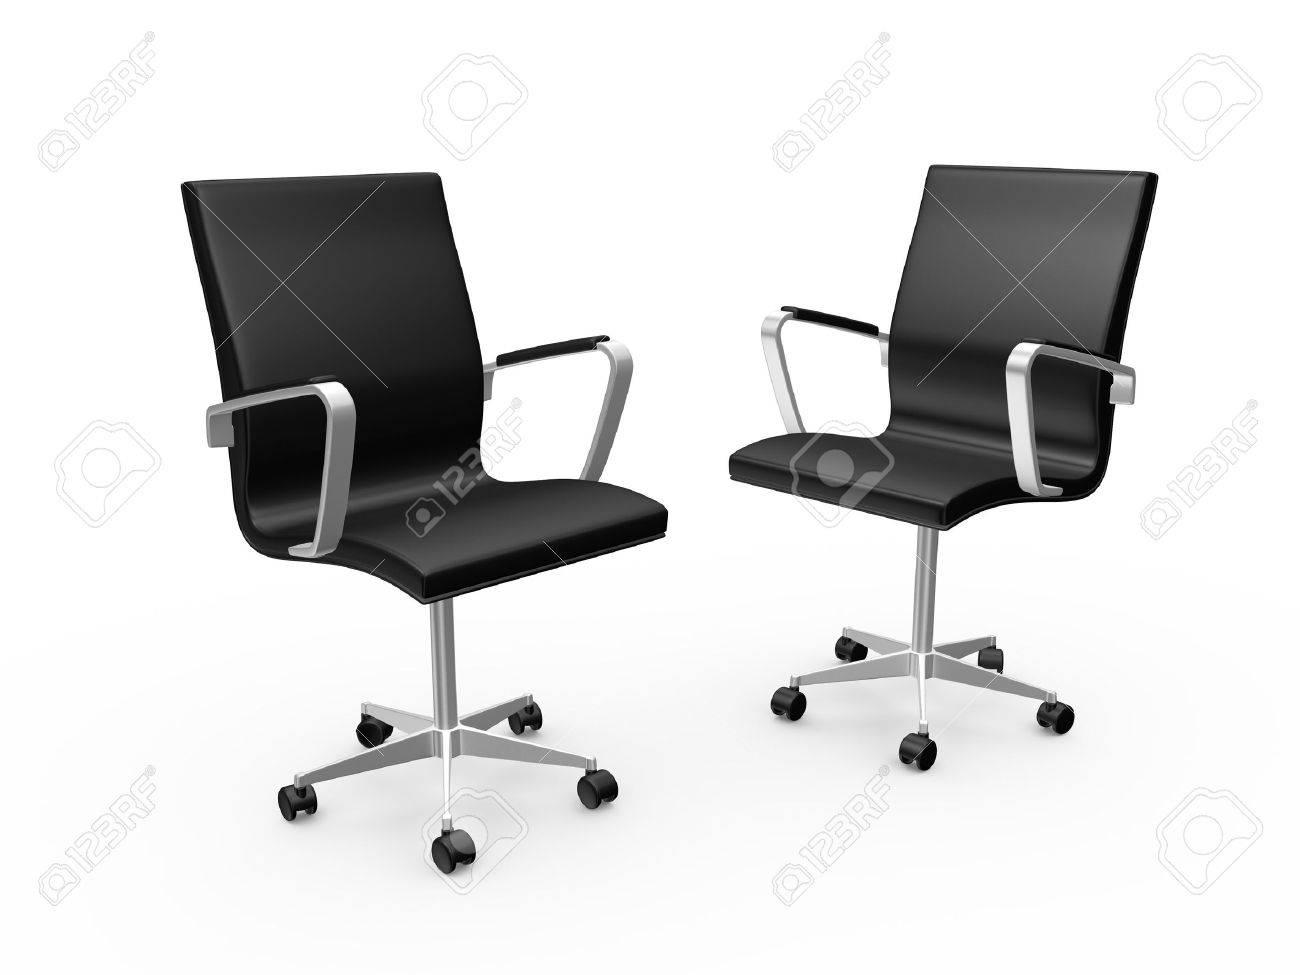 Stock Photo   Two Black Leather Boss Chairs For Office, Isolated On White  Background.